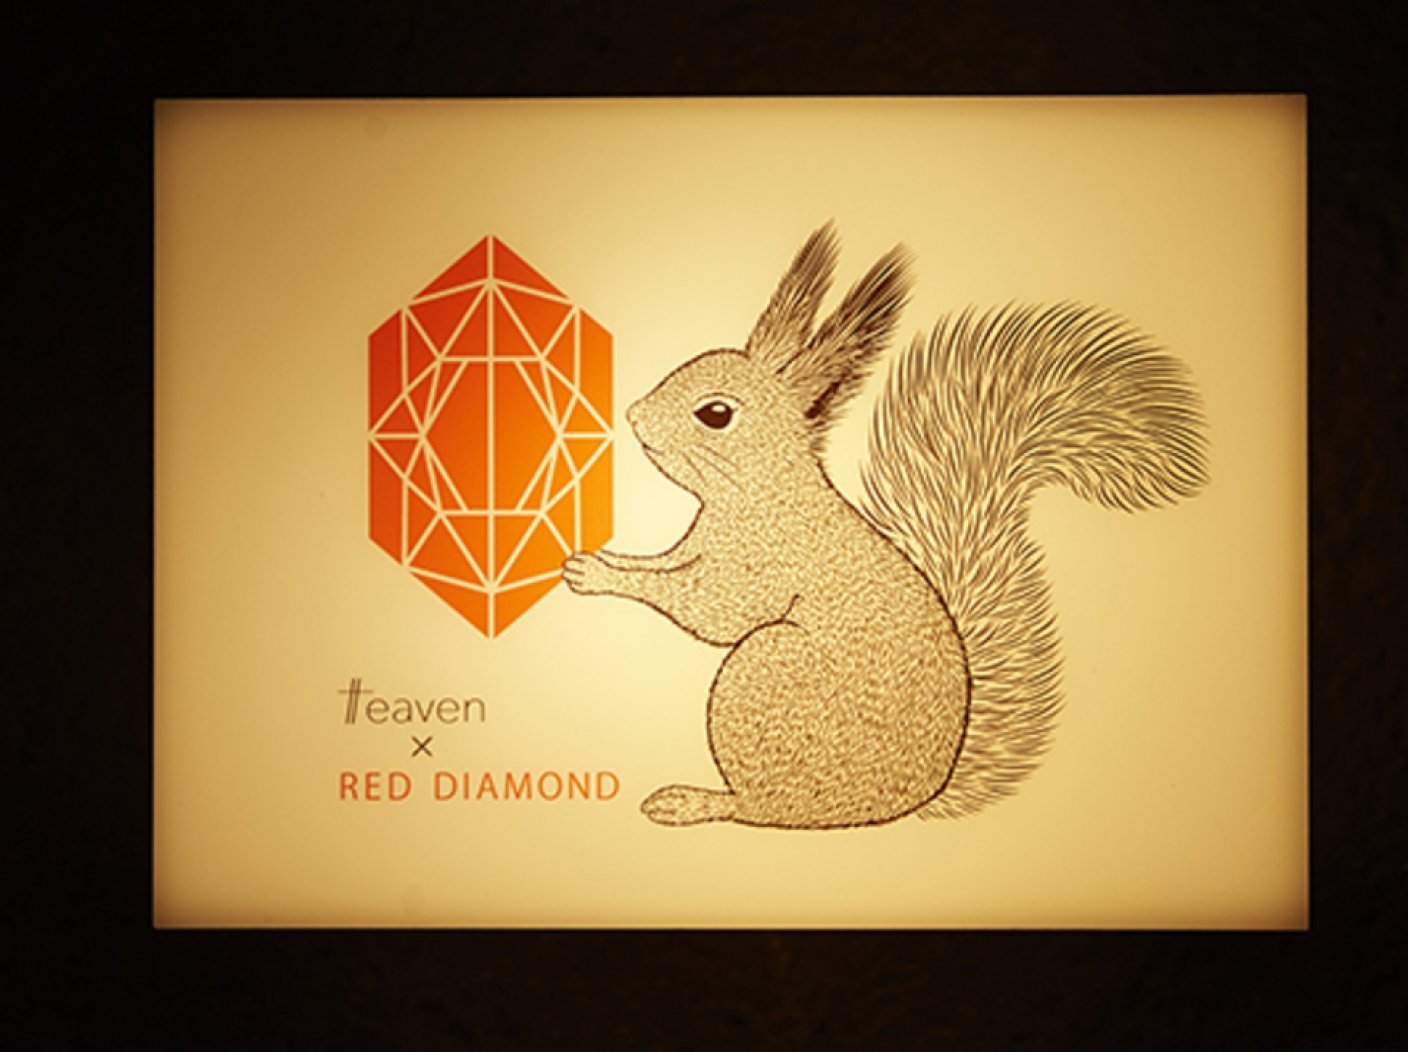 Teaven×Red Diamond Akasakaの写真 4